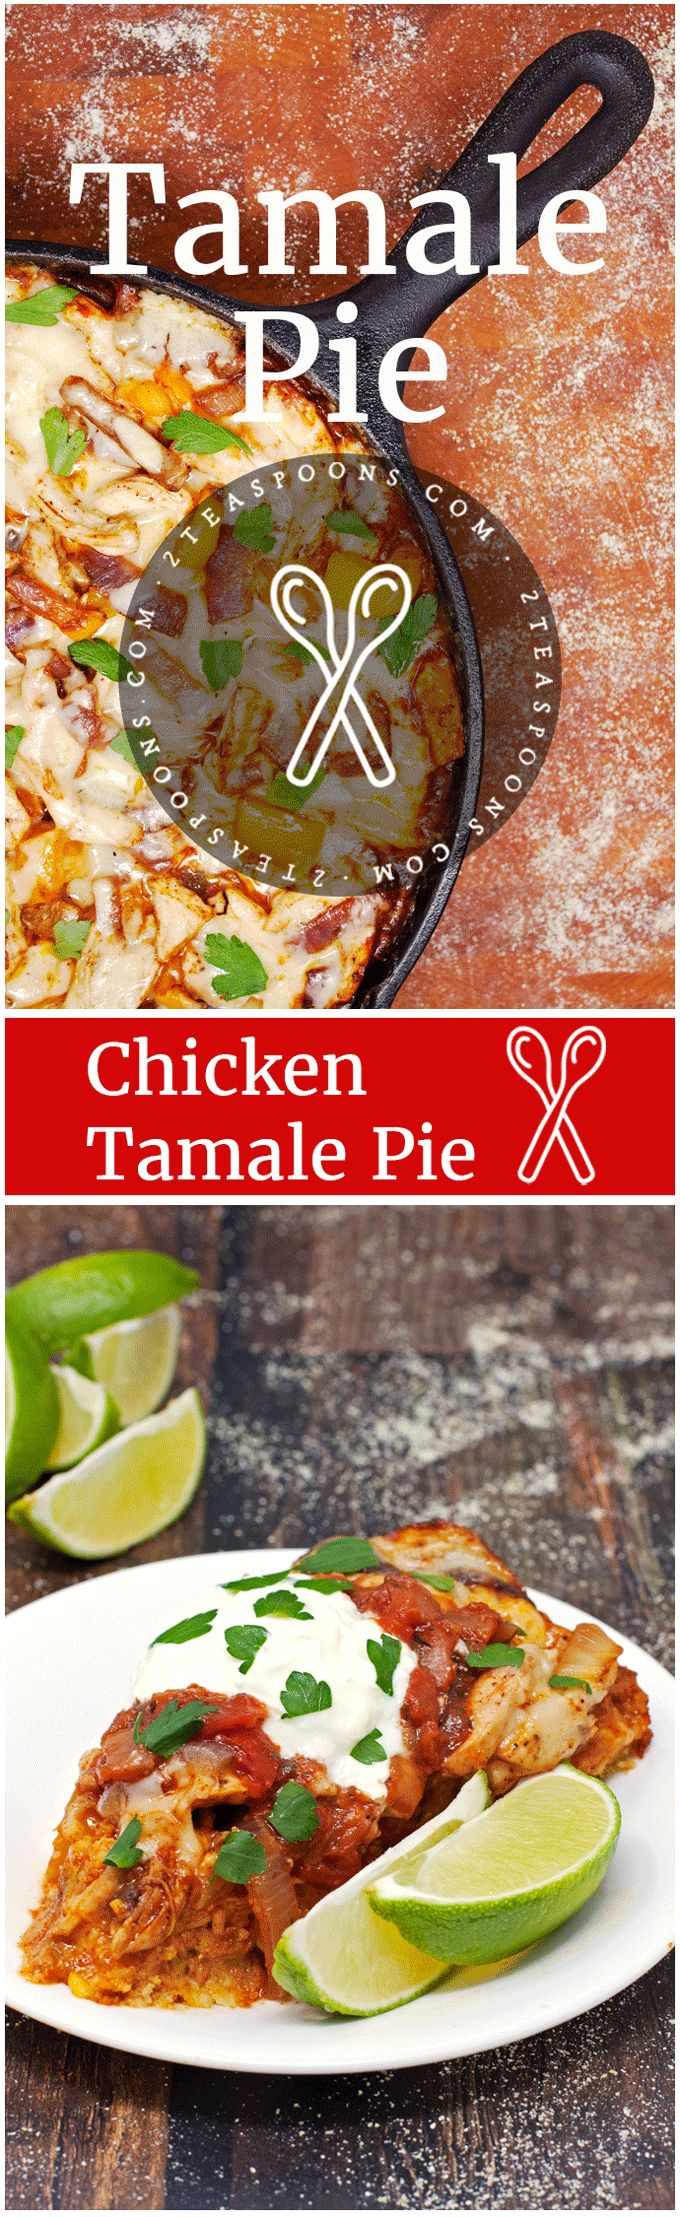 Chicken Tamale Pie - 2teaspoons